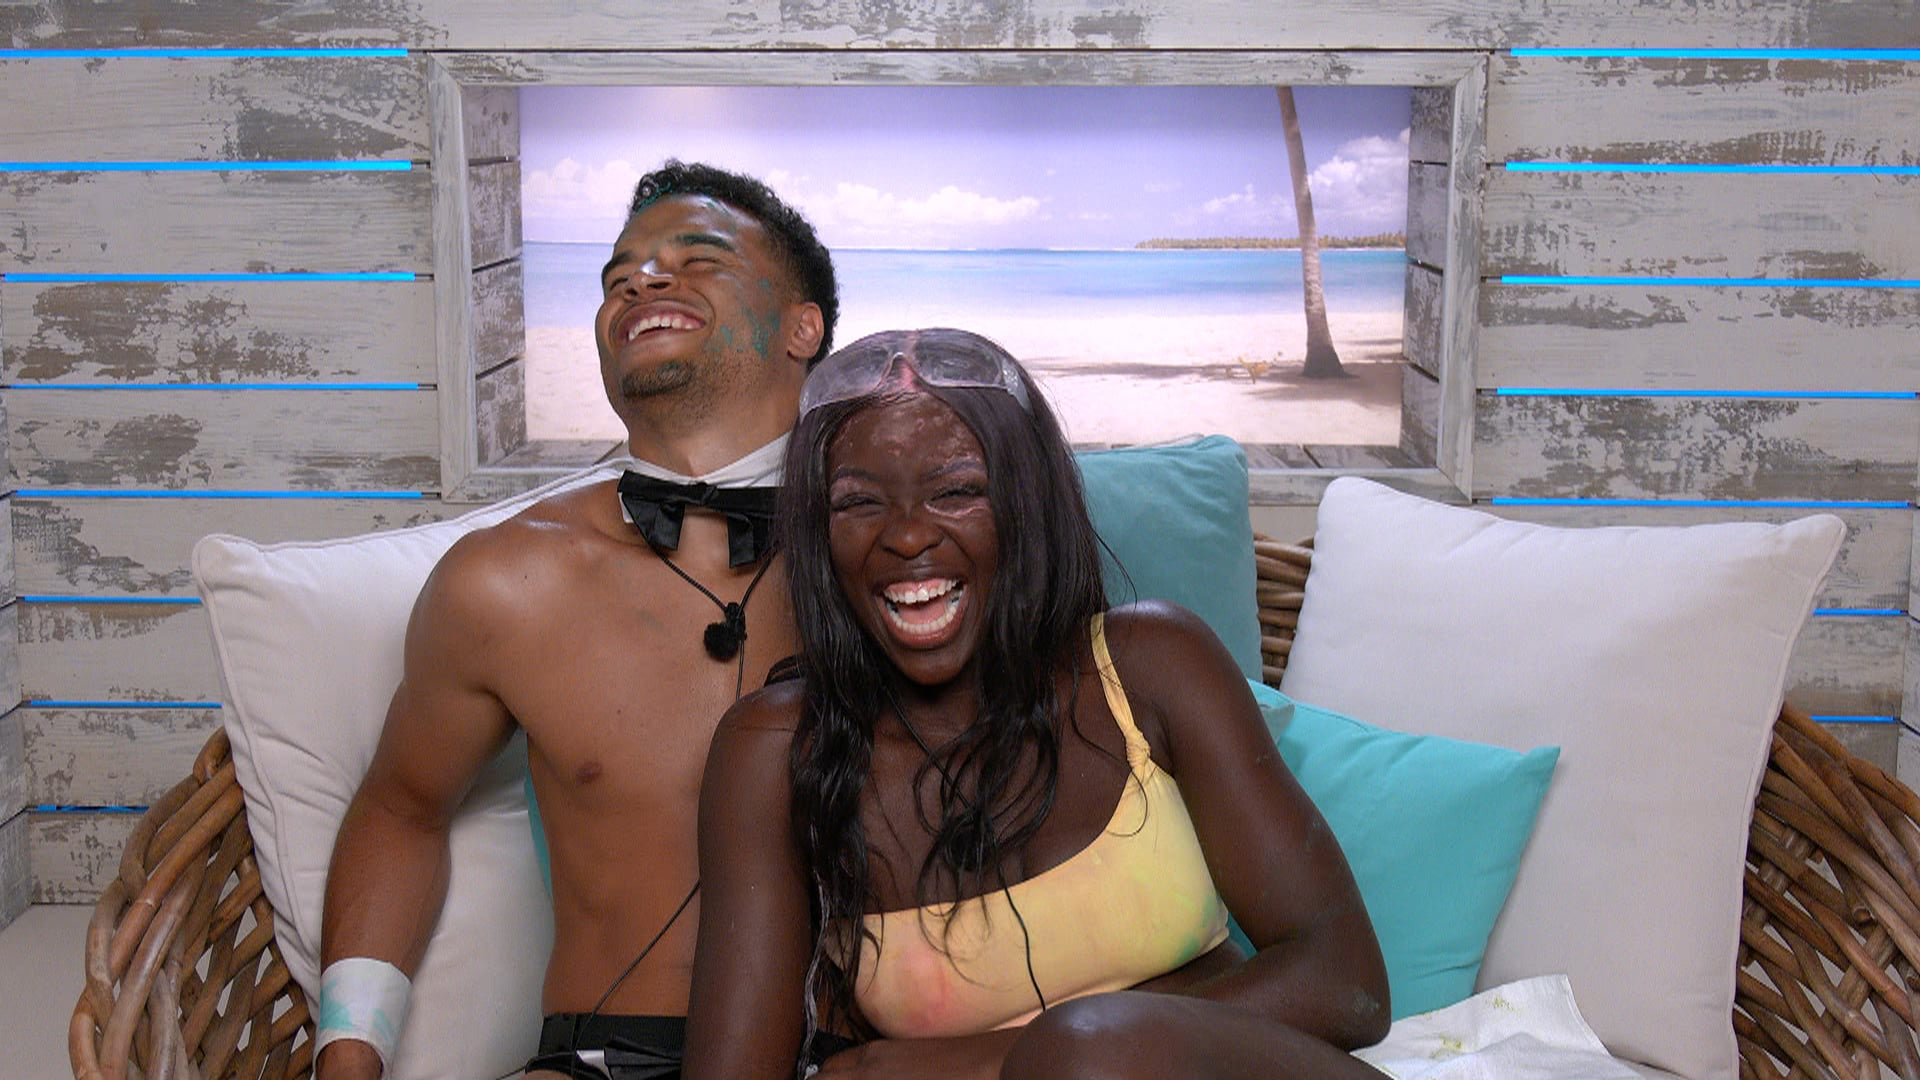 From Lifted EntertainmentLove Island: SR7: Ep6 on ITV2 and ITV Hub new episodes are available the following morning on BritBoxPictured: Toby and Kaz.This photograph is (C) ITV Plc and can only be reproduced for editorial purposes directly in connection with the programme or event mentioned above, or ITV plc. Once made available by ITV plc Picture Desk, this photograph can be reproduced once only up until the transmission [TX] date and no reproduction fee will be charged. Any subsequent usage may incur a fee. This photograph must not be manipulated [excluding basic cropping] in a manner which alters the visual appearance of the person photographed deemed detrimental or inappropriate by ITV plc Picture Desk.  This photograph must not be syndicated to any other company, publication or website, or permanently archived, without the express written permission of ITV Picture Desk. Full Terms and conditions are available on the website www.itv.com/presscentre/itvpictures/termsFor further information please contact:james.hilder@itv.com / 0207 157 3052